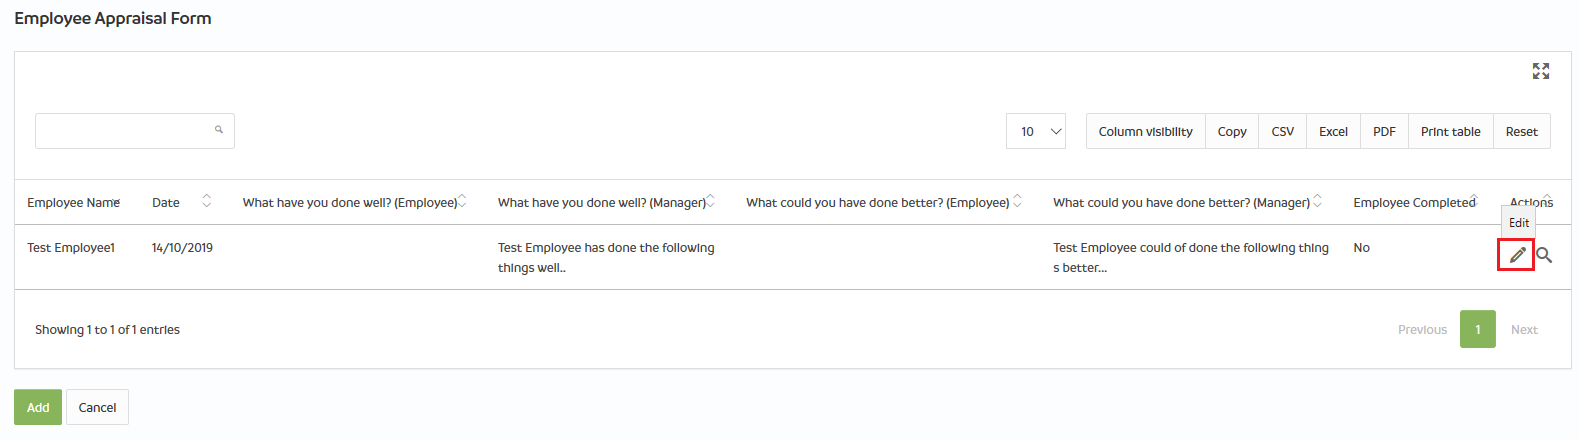 ManagerCreatingReviewForm4.png